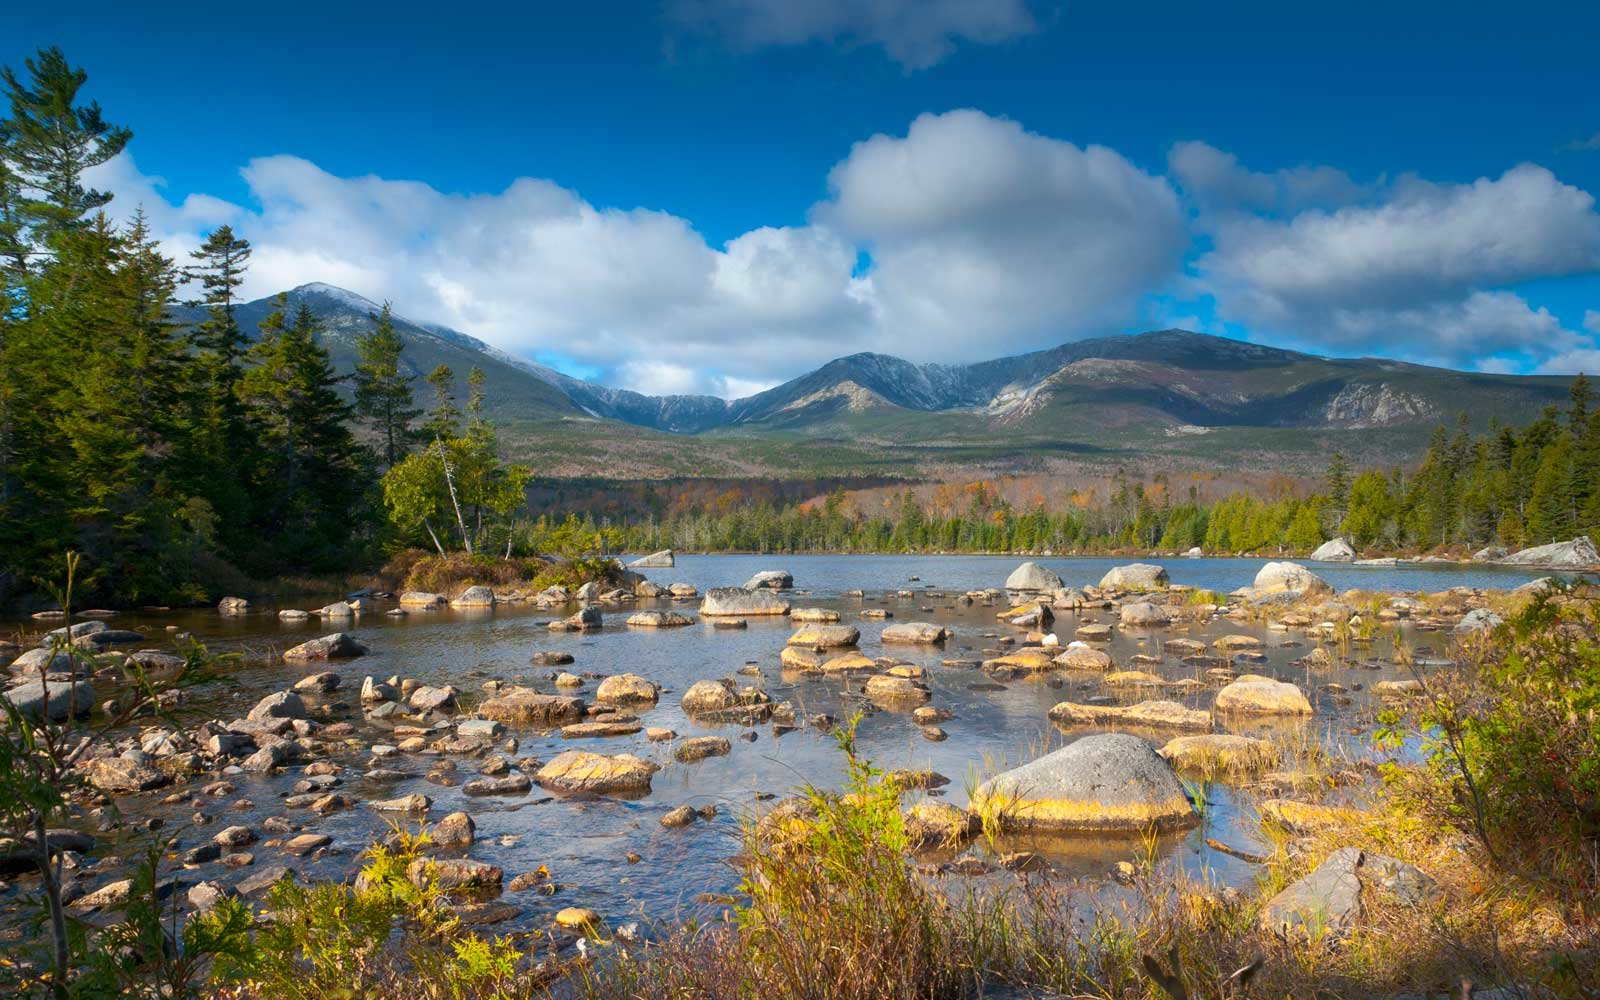 Sandy Stream Pond, Baxter State Park, Maine, New England